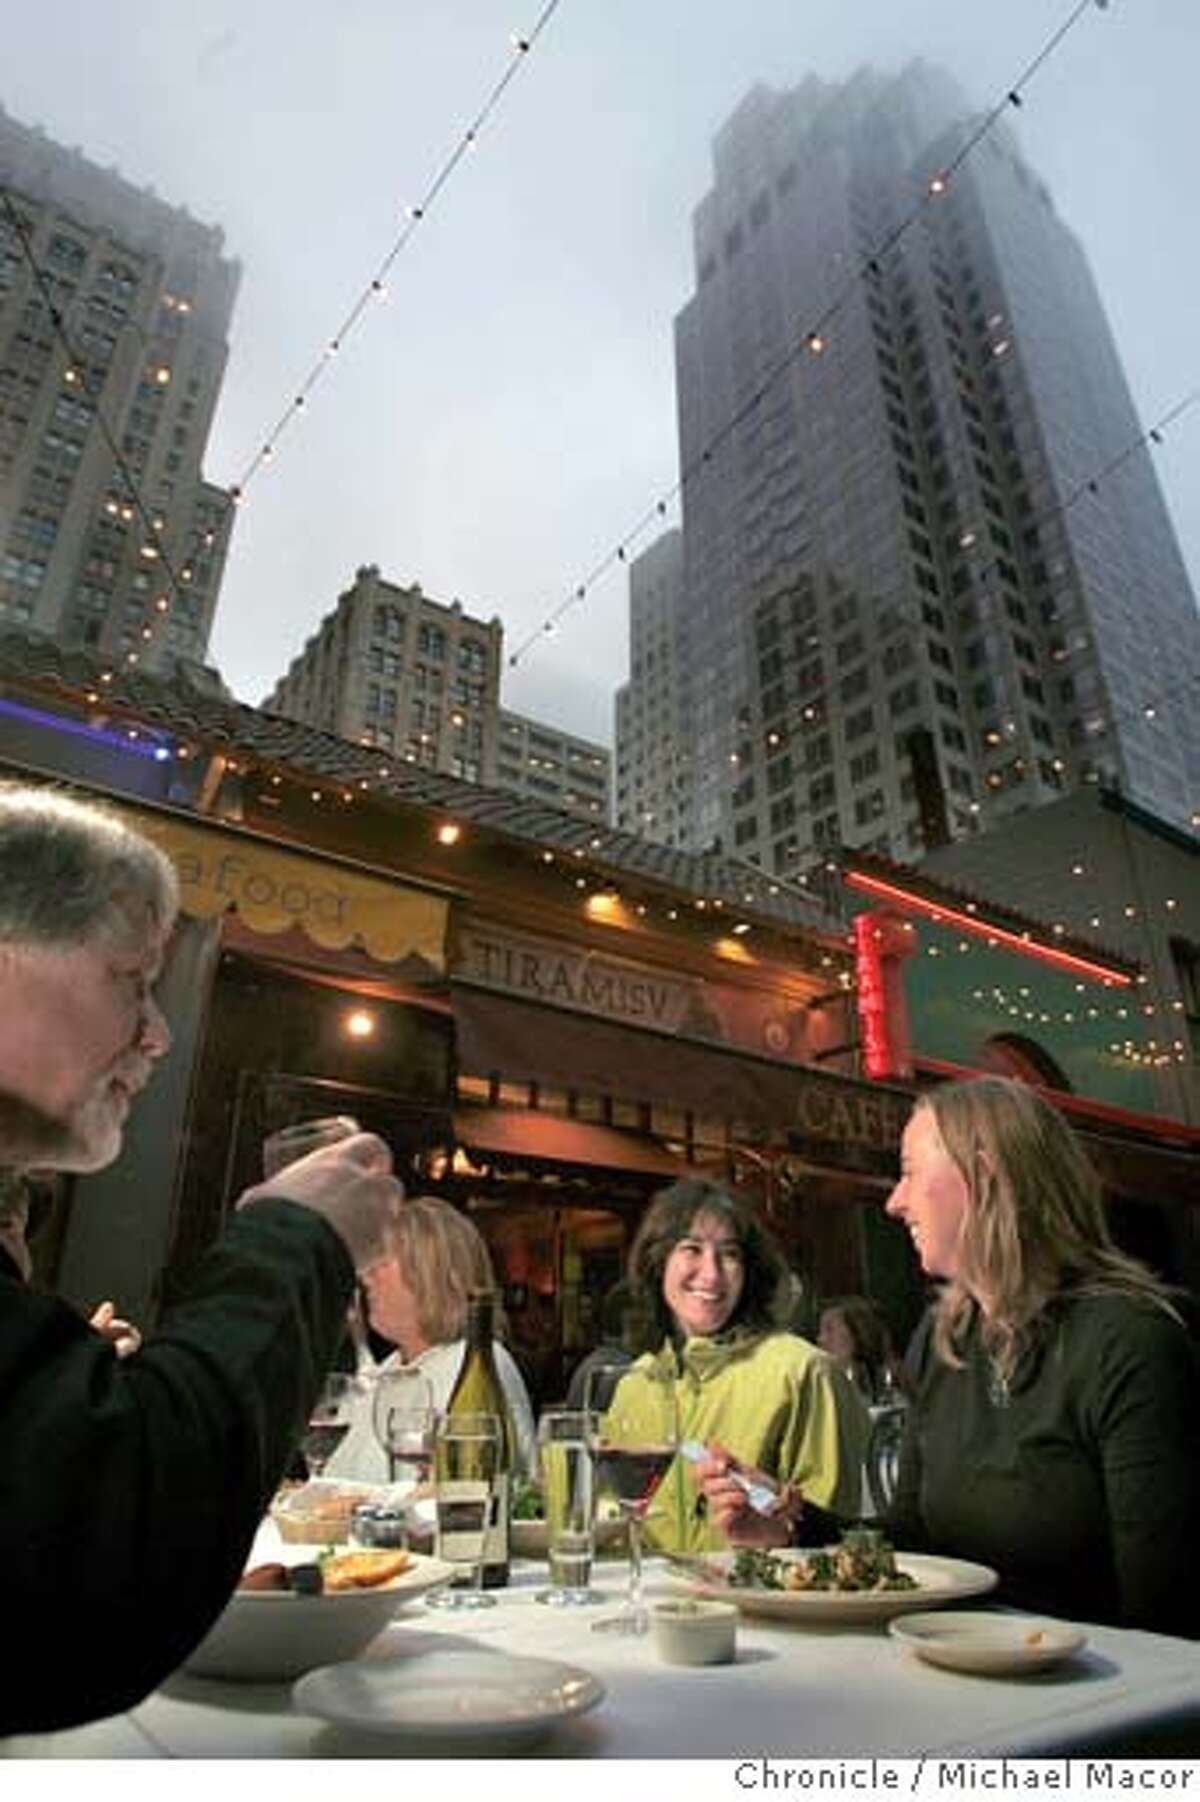 l to r-Peter Loeb, SF , Marla Bartoni, Detroit and Heather Cronin, Baltimore enjoy the outdoor seating at Plouf restaurant below the buildings at the edge of the financial district. Belden Place in San Francsico, a tiny alley that is lined with numerous restaurants. 8/11/04 in San Francisco Michael Macor/San Francisco Chronicle